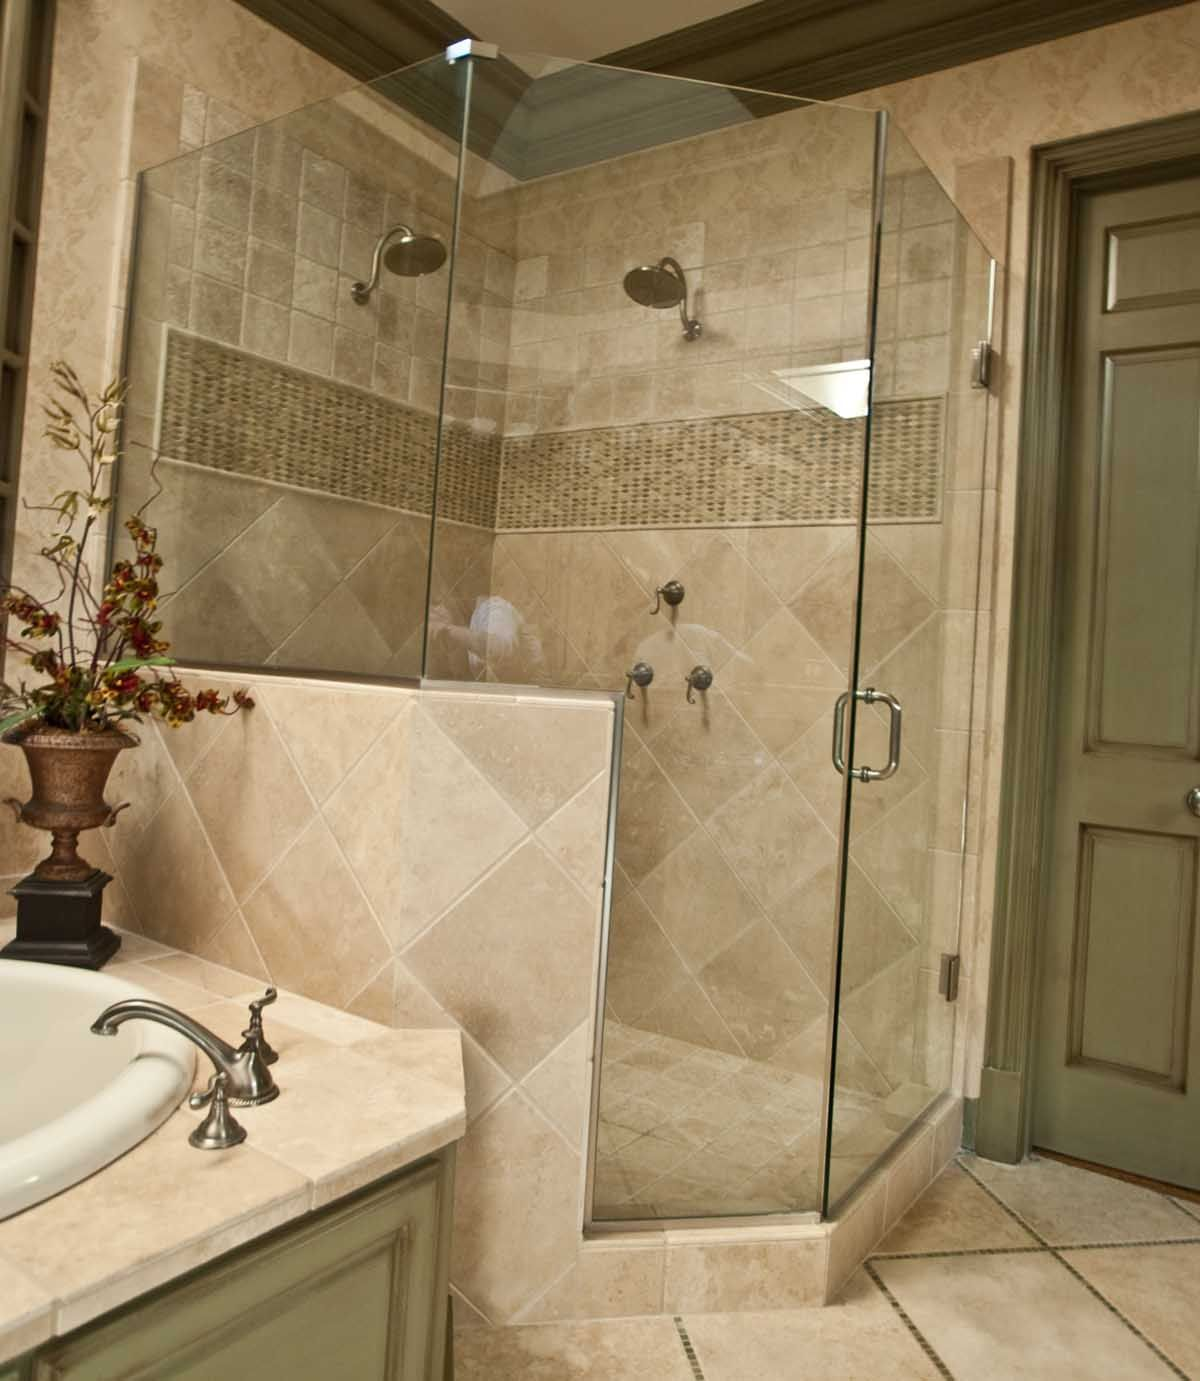 bathroom remodeling ideas bathroom remodeling ideas for small bathroom remodeling ideas bathroom remodeling ideas for small bathrooms from firmones styles